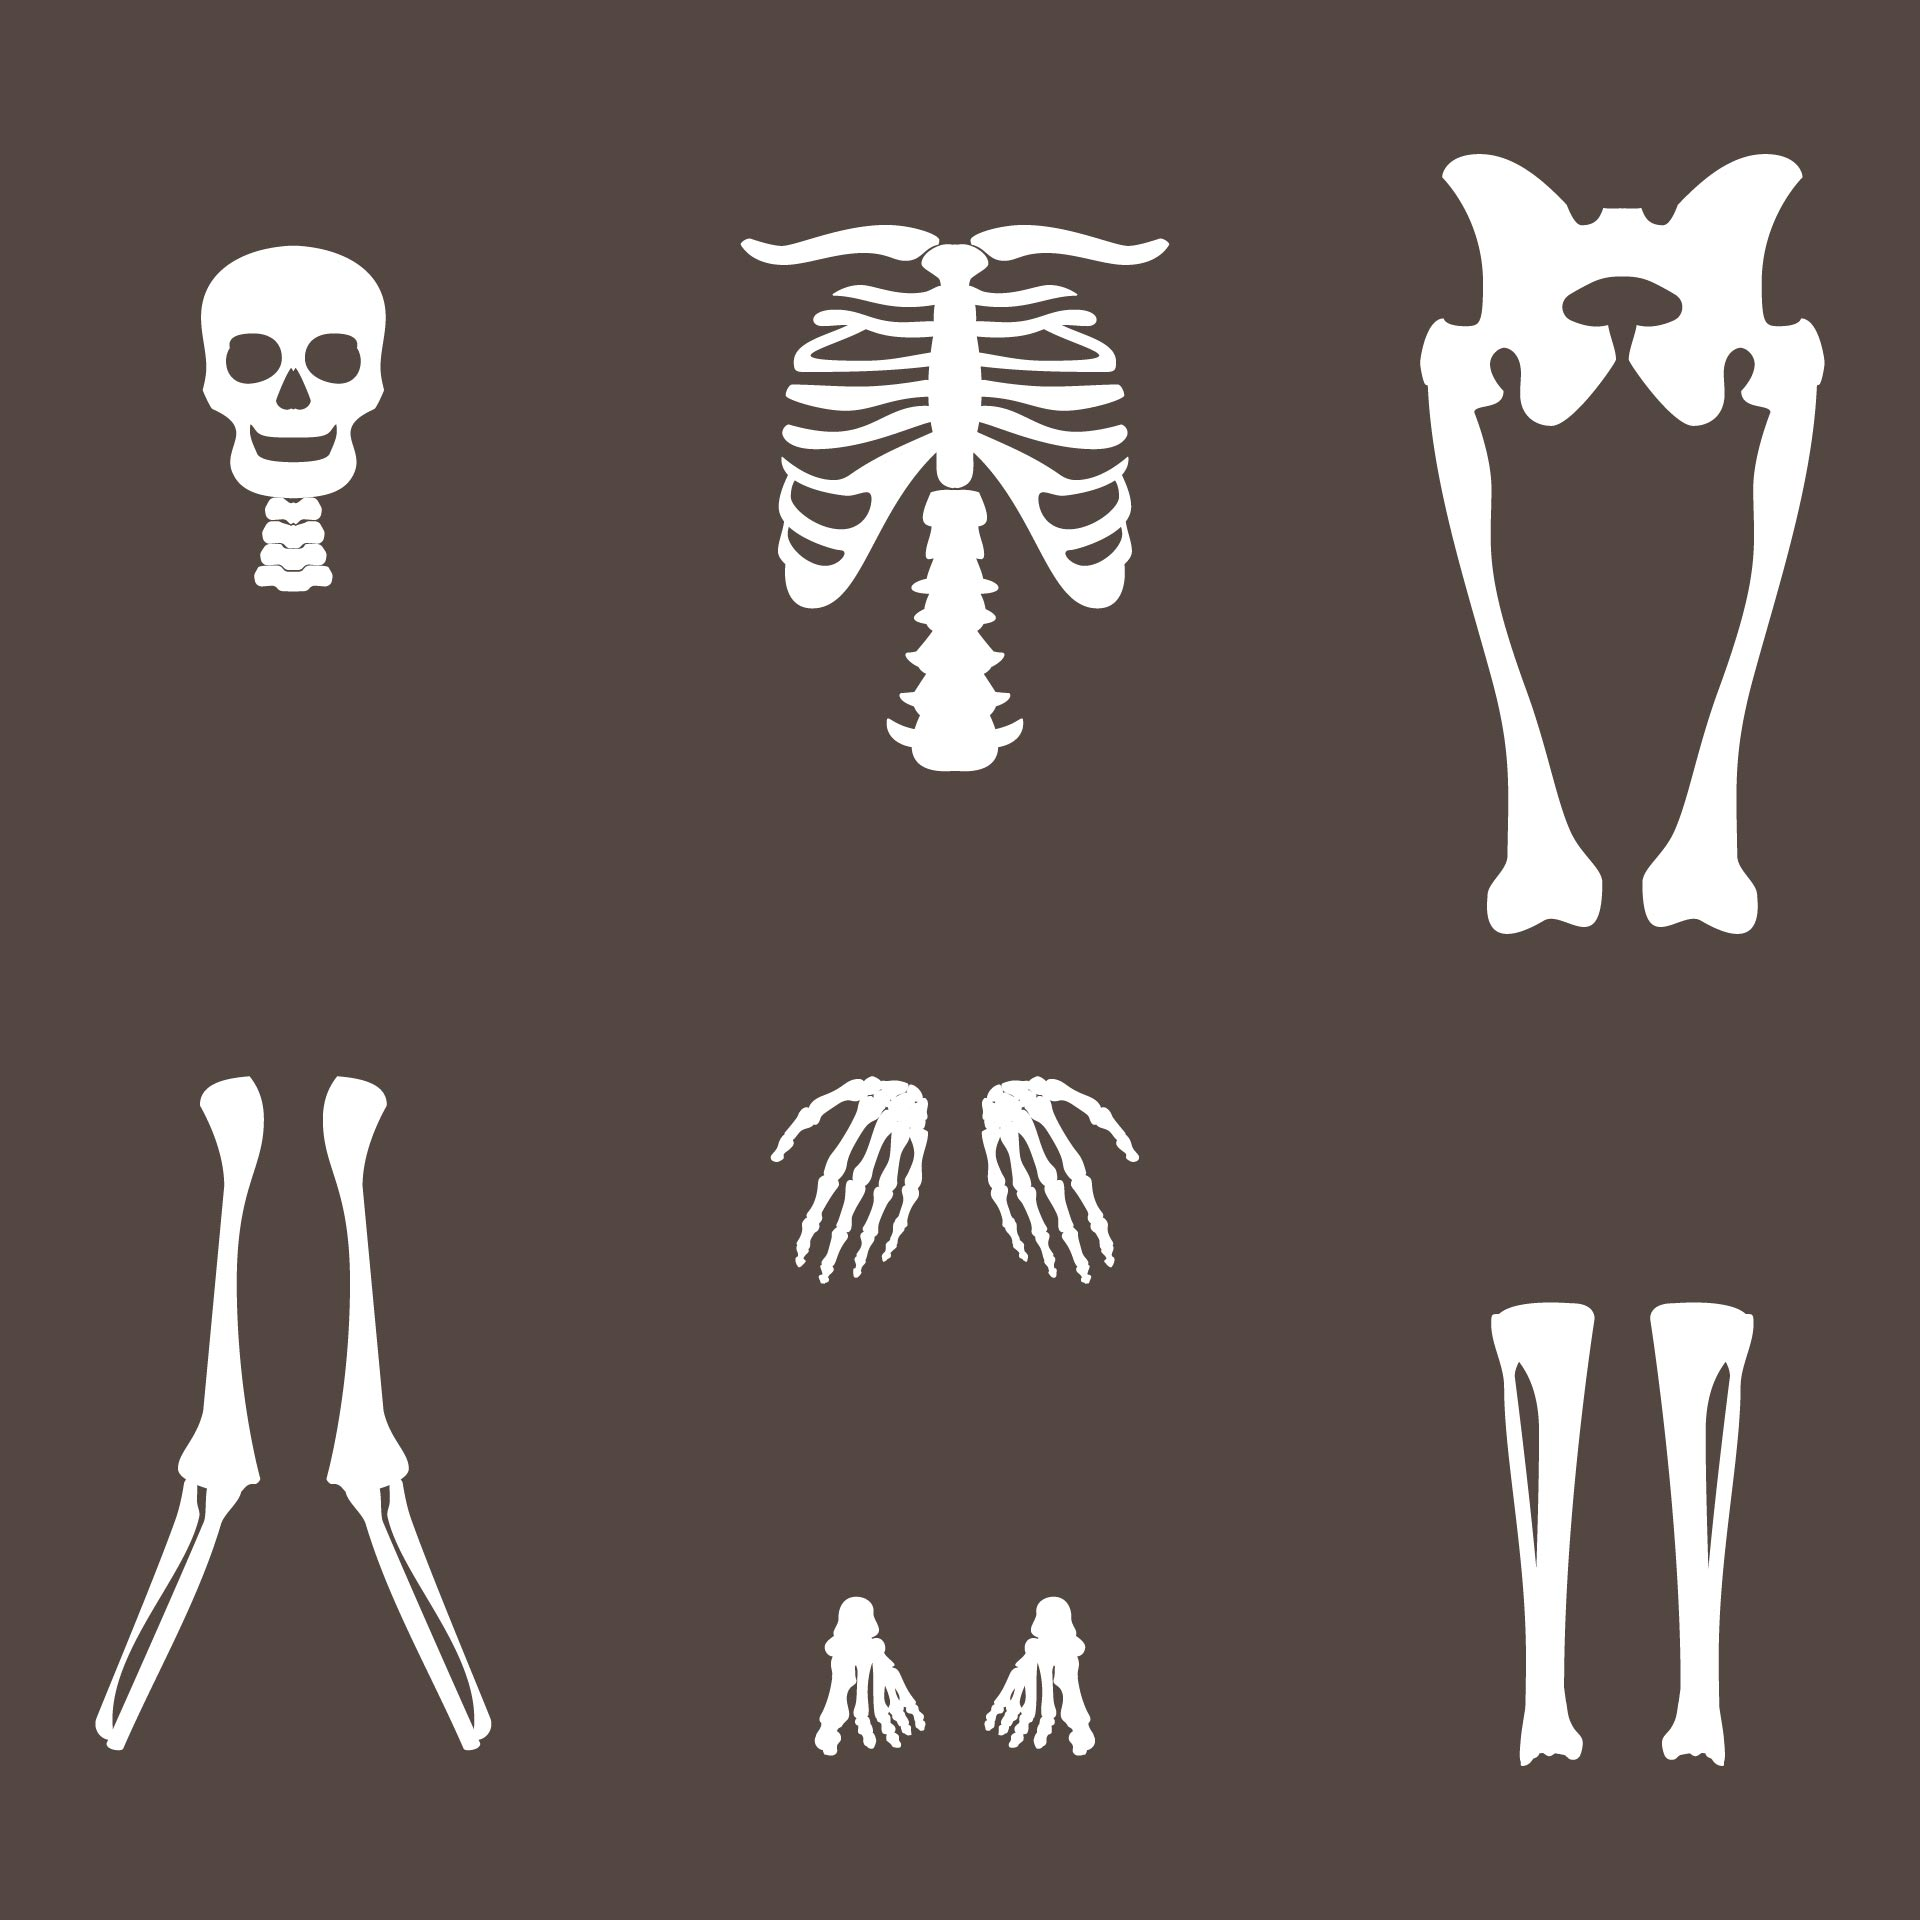 8 Best Images of Halloween Printable Skeleton Parts